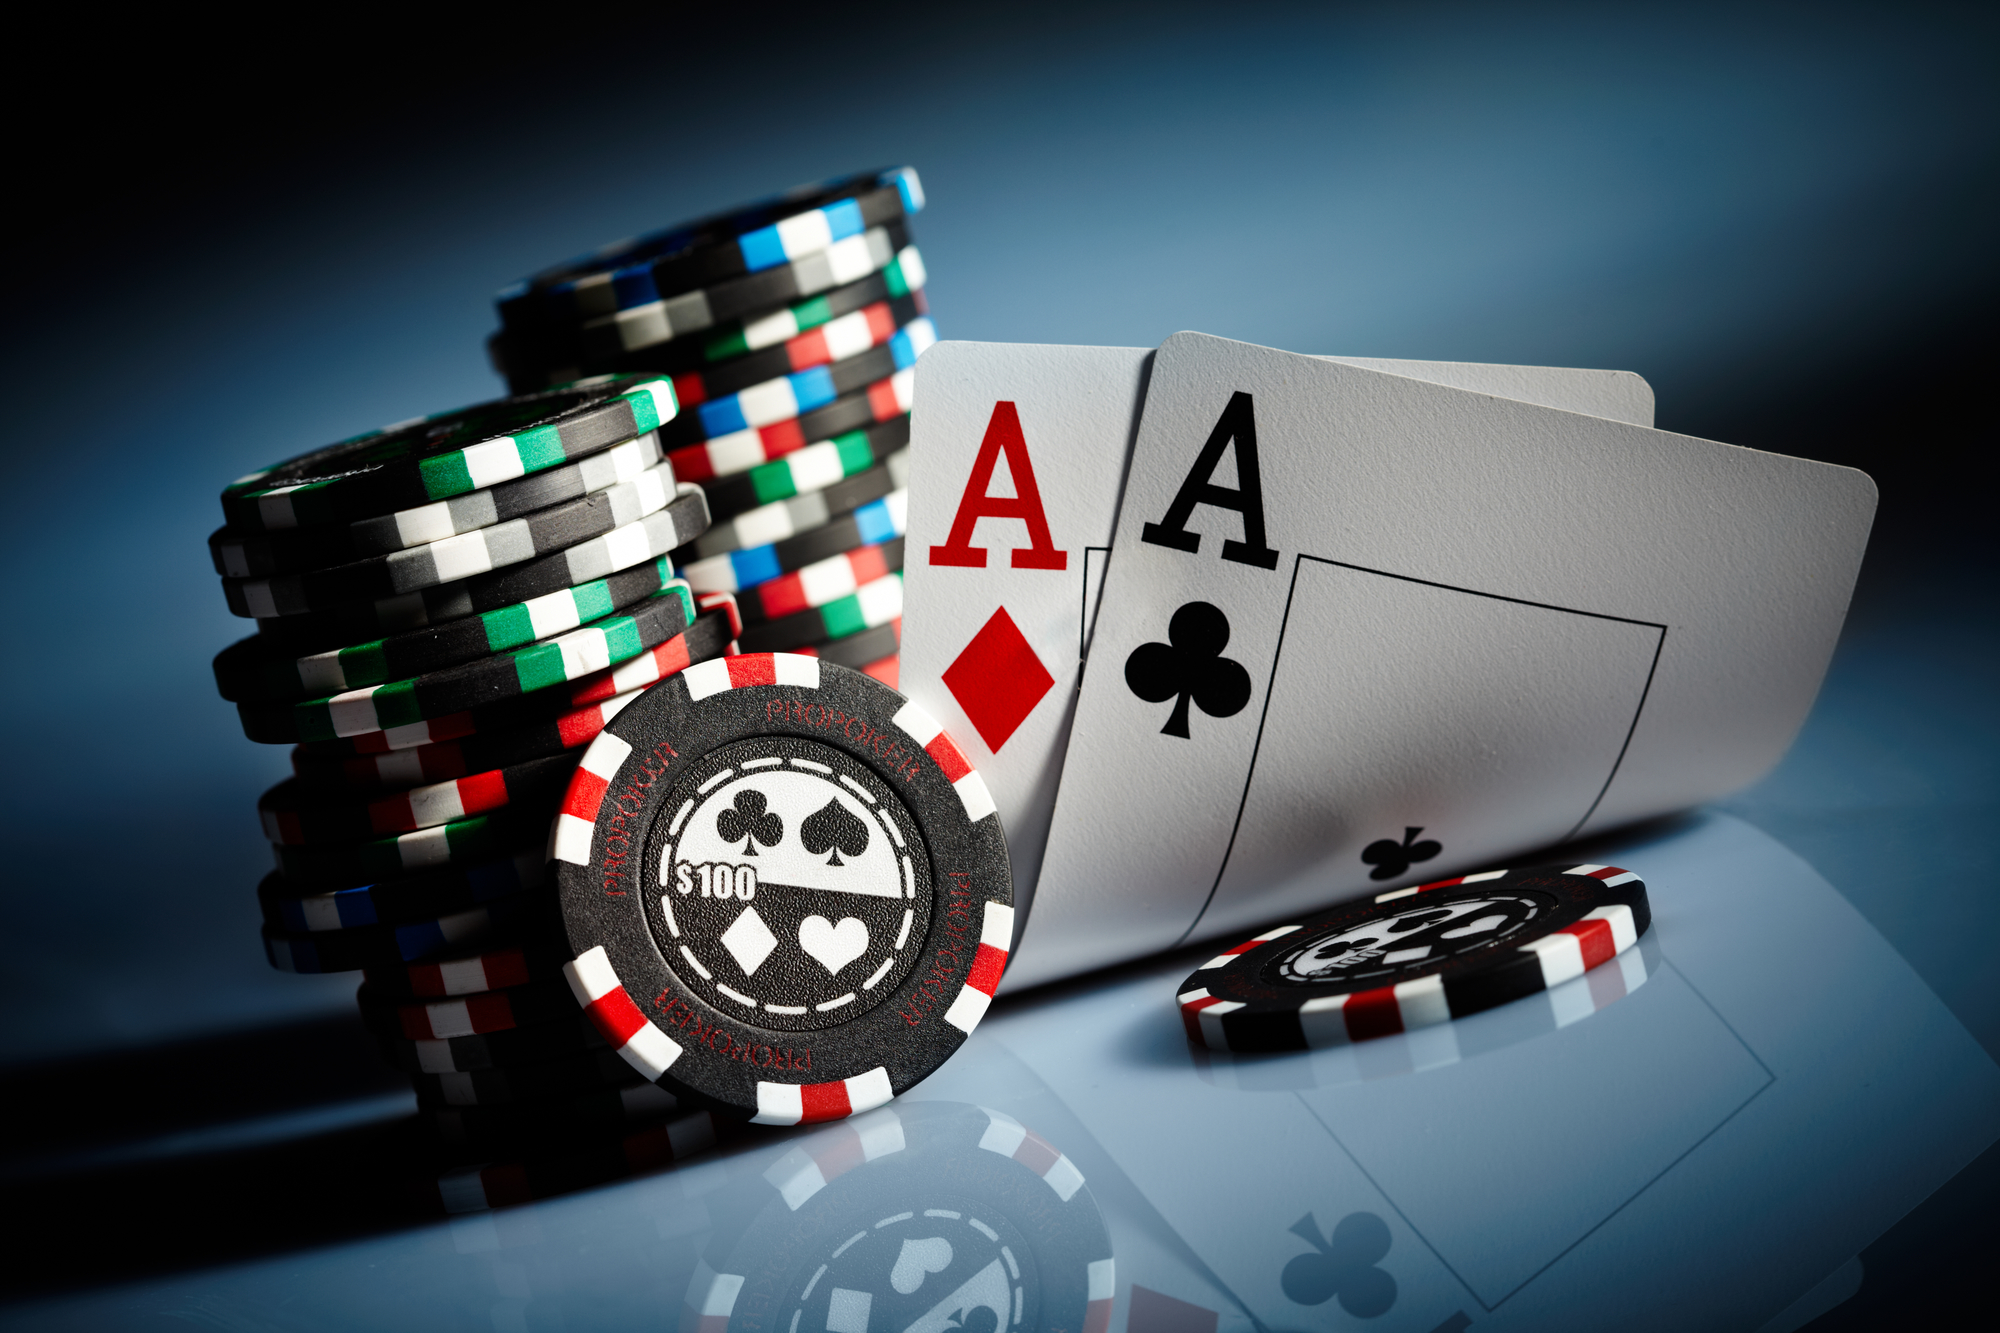 Big Bet is a type of play in Poker